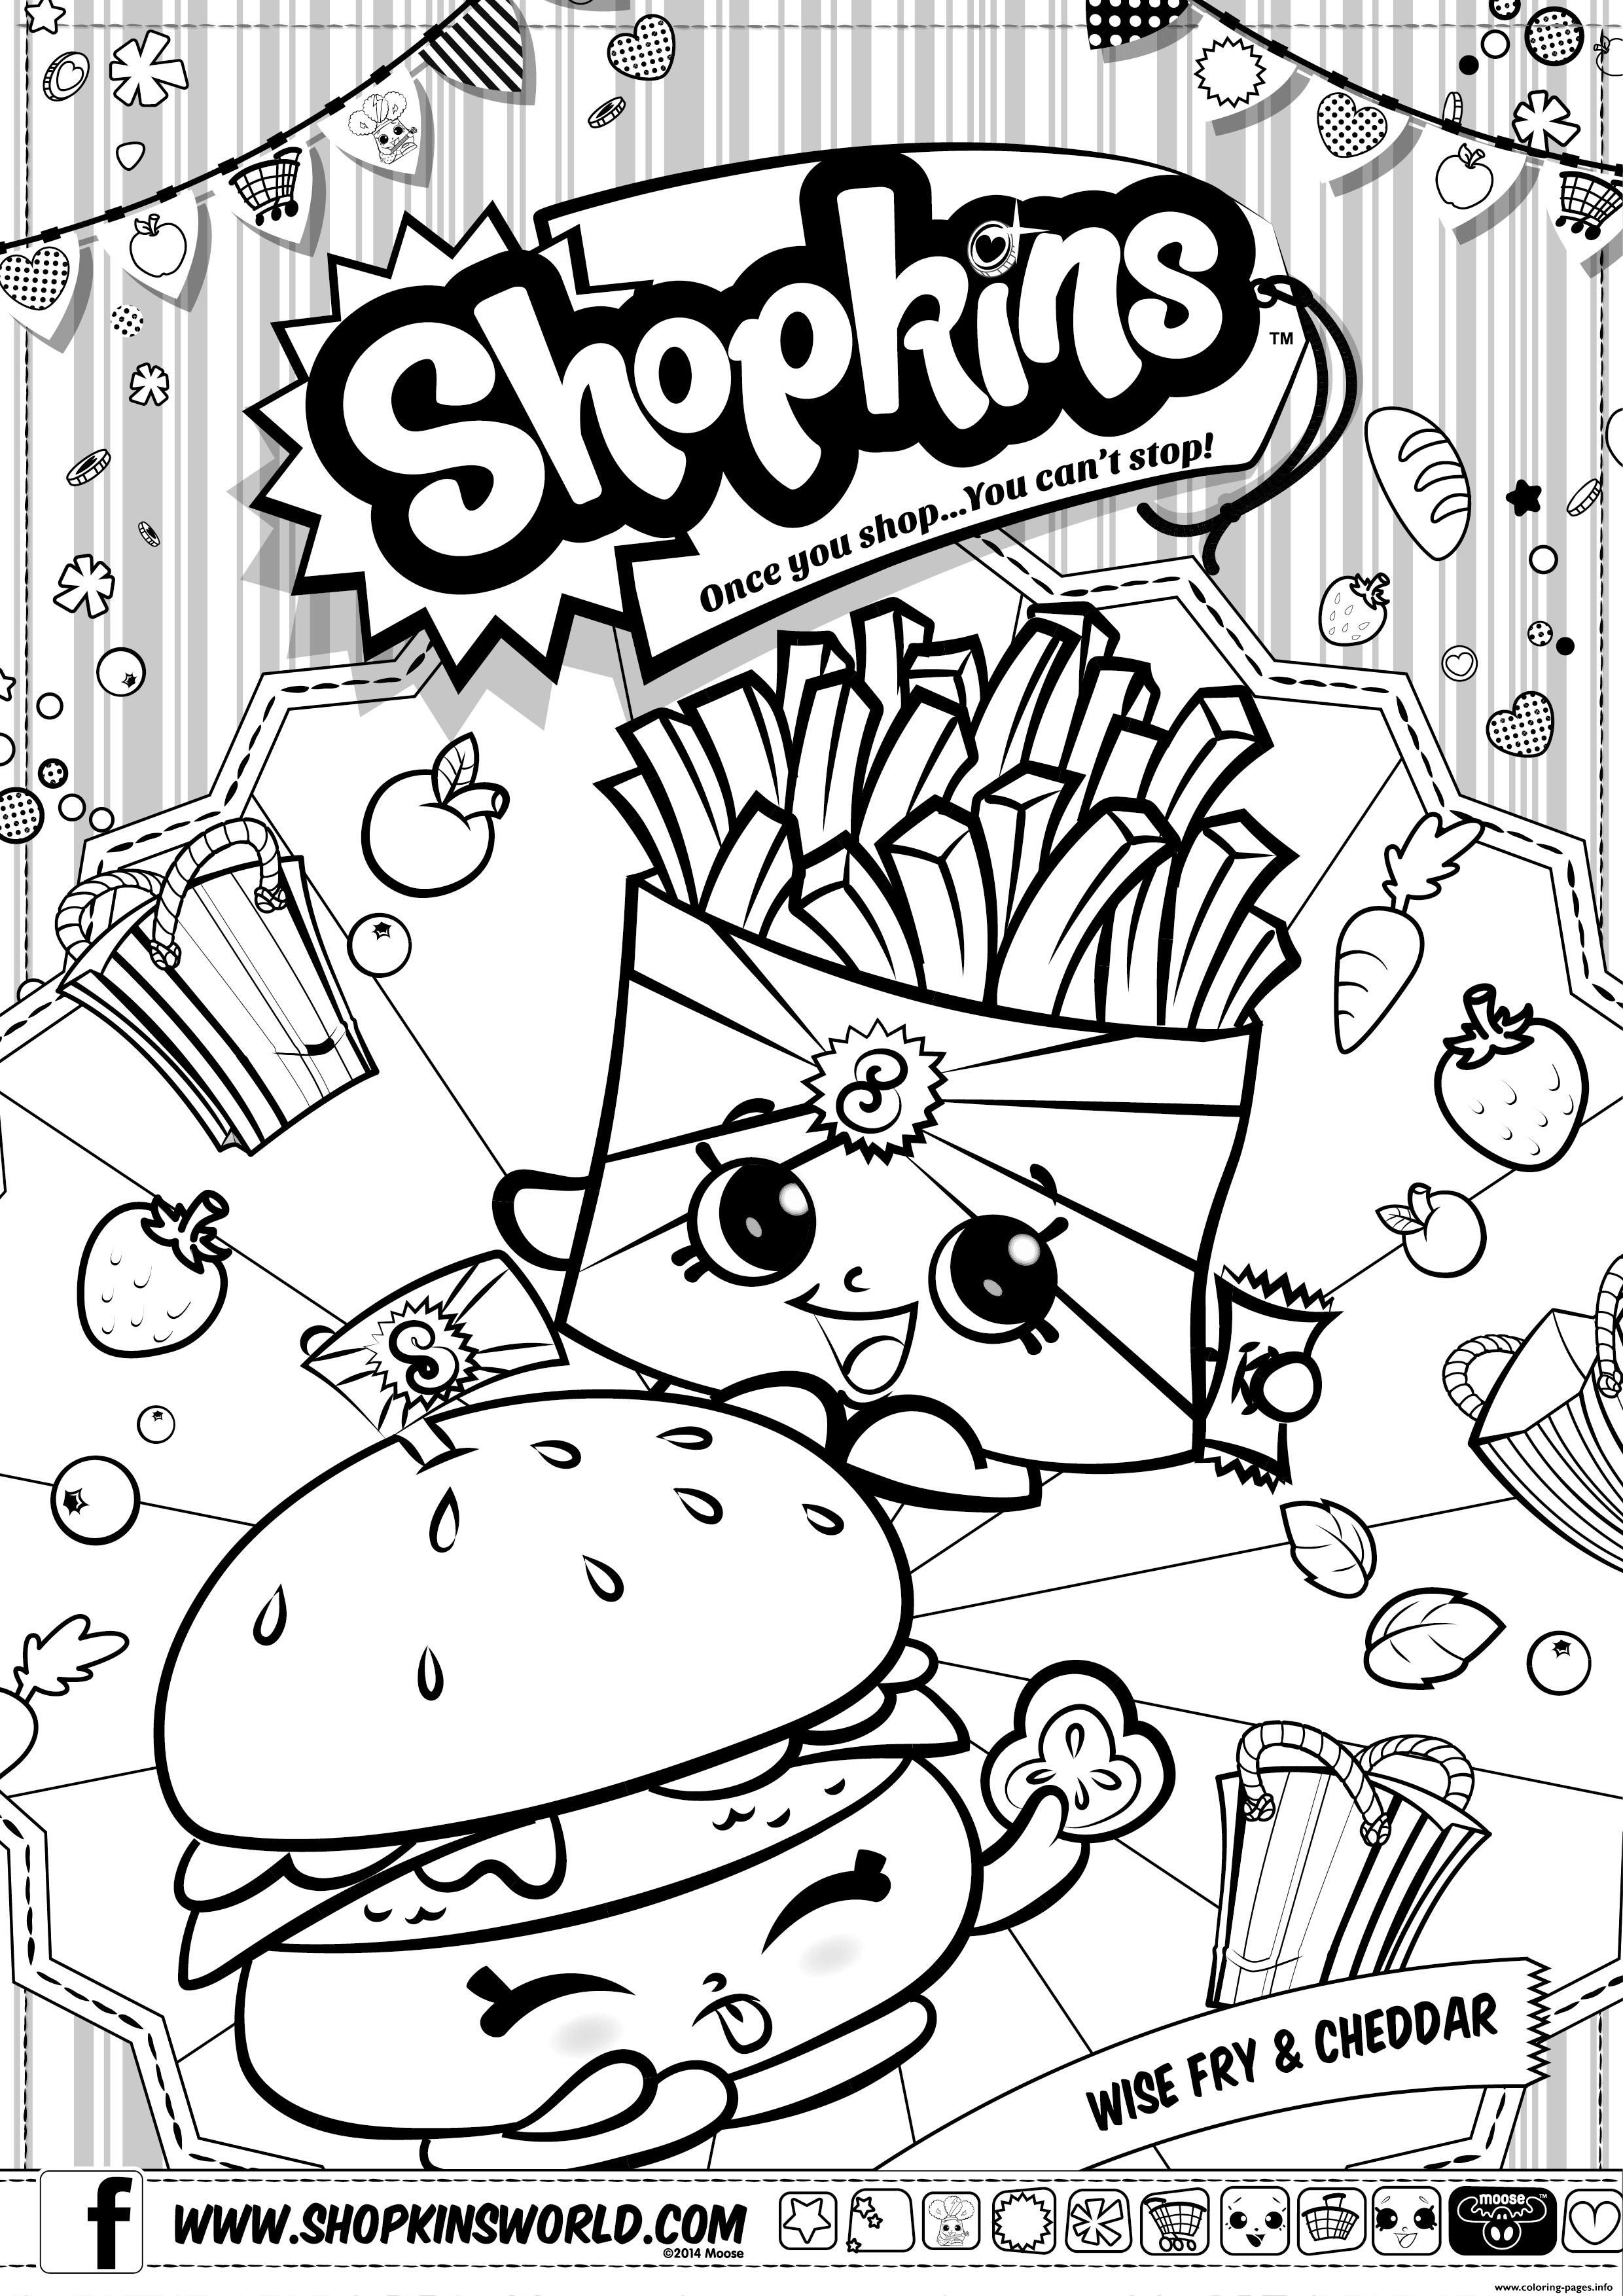 Shopkins shoppies dolls coloring page - Shopkins Wise Fry Cheddar Coloring Pages Printable And Coloring Book To Print For Free Find More Coloring Pages Online For Kids And Adults Of Shopkins Wise